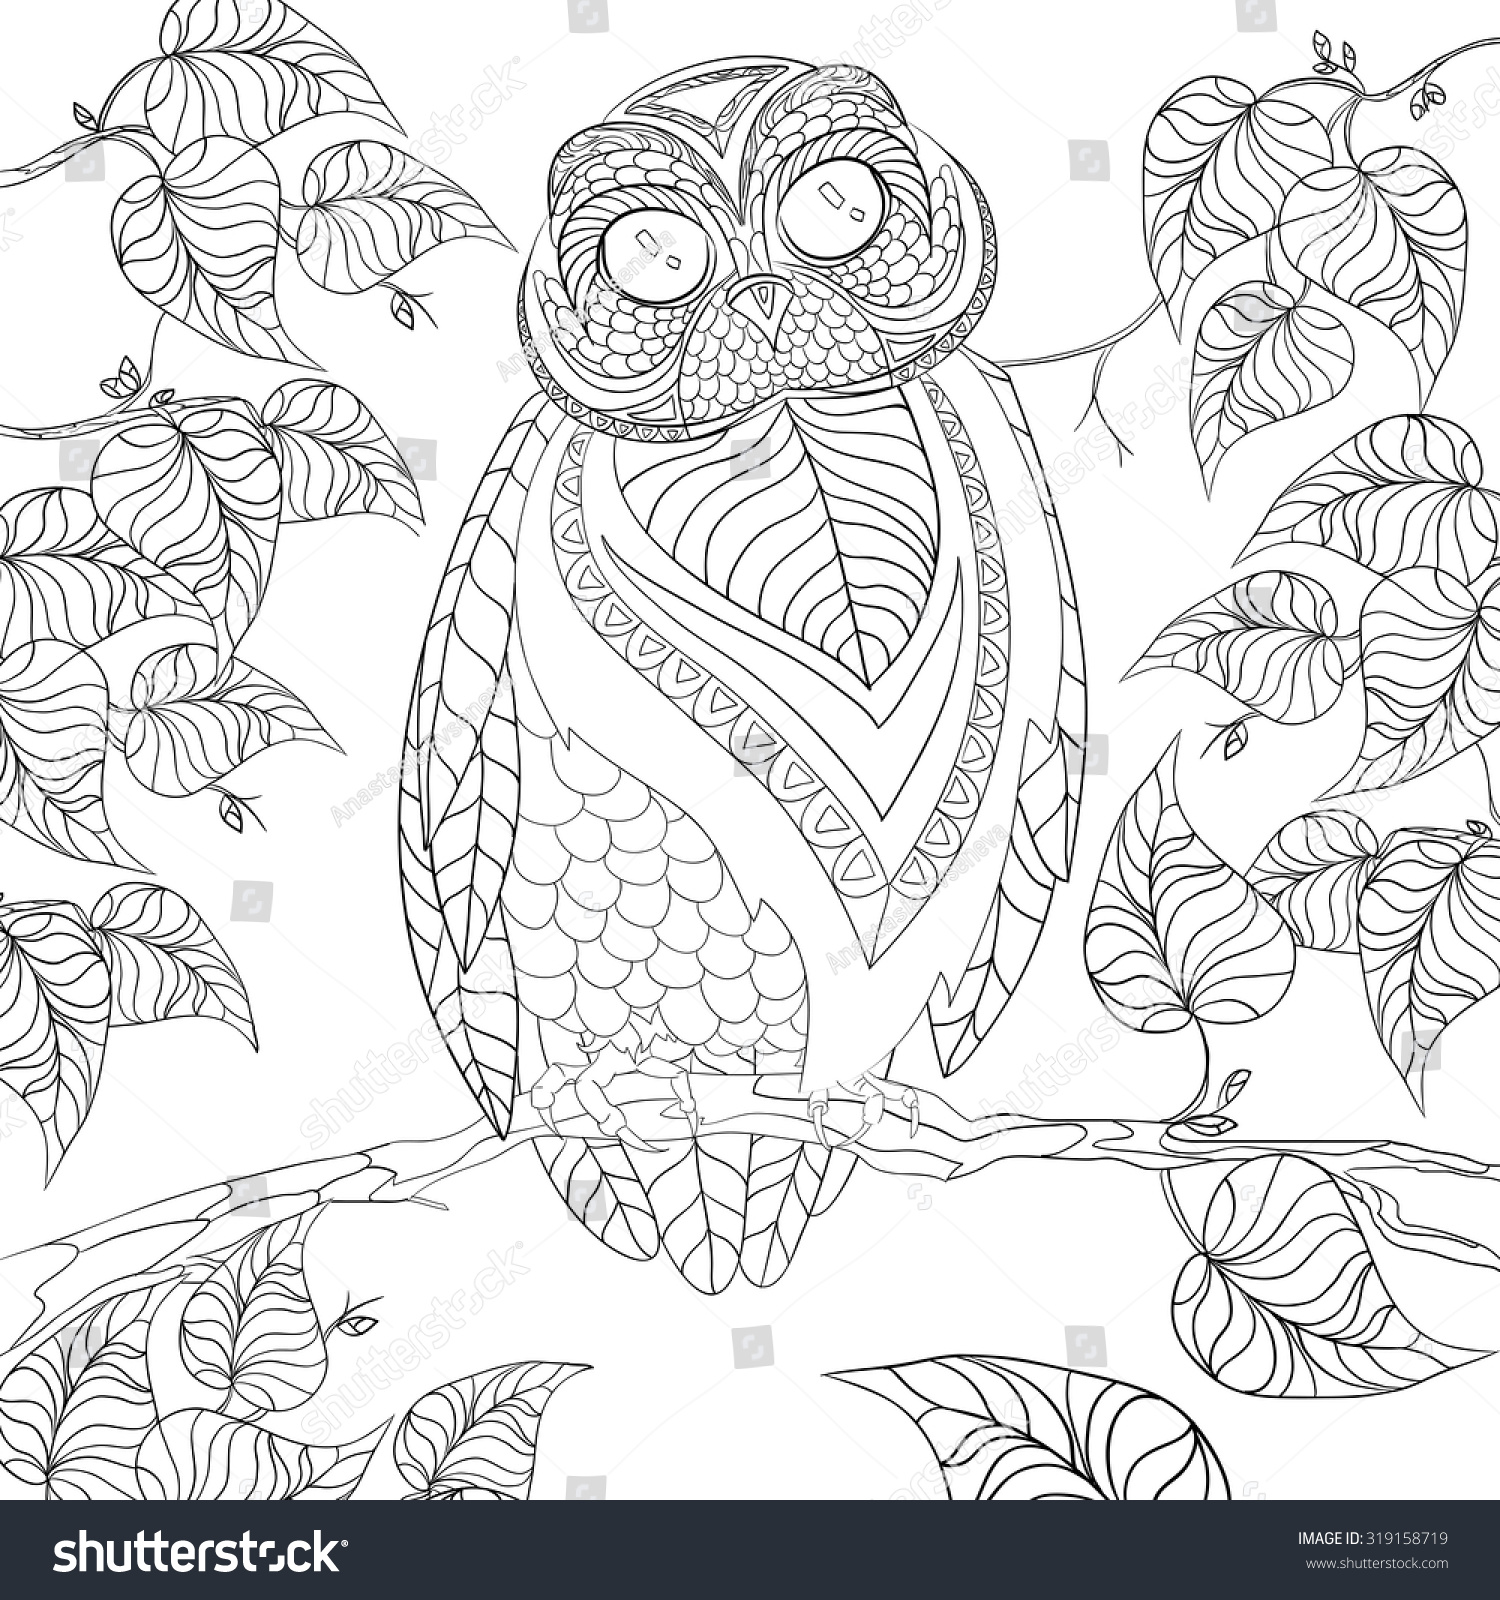 Do anti stress colouring books work - Anti Stress Colouring In Book Art And Color Therapy An Anti Stress Coloring Book Wise